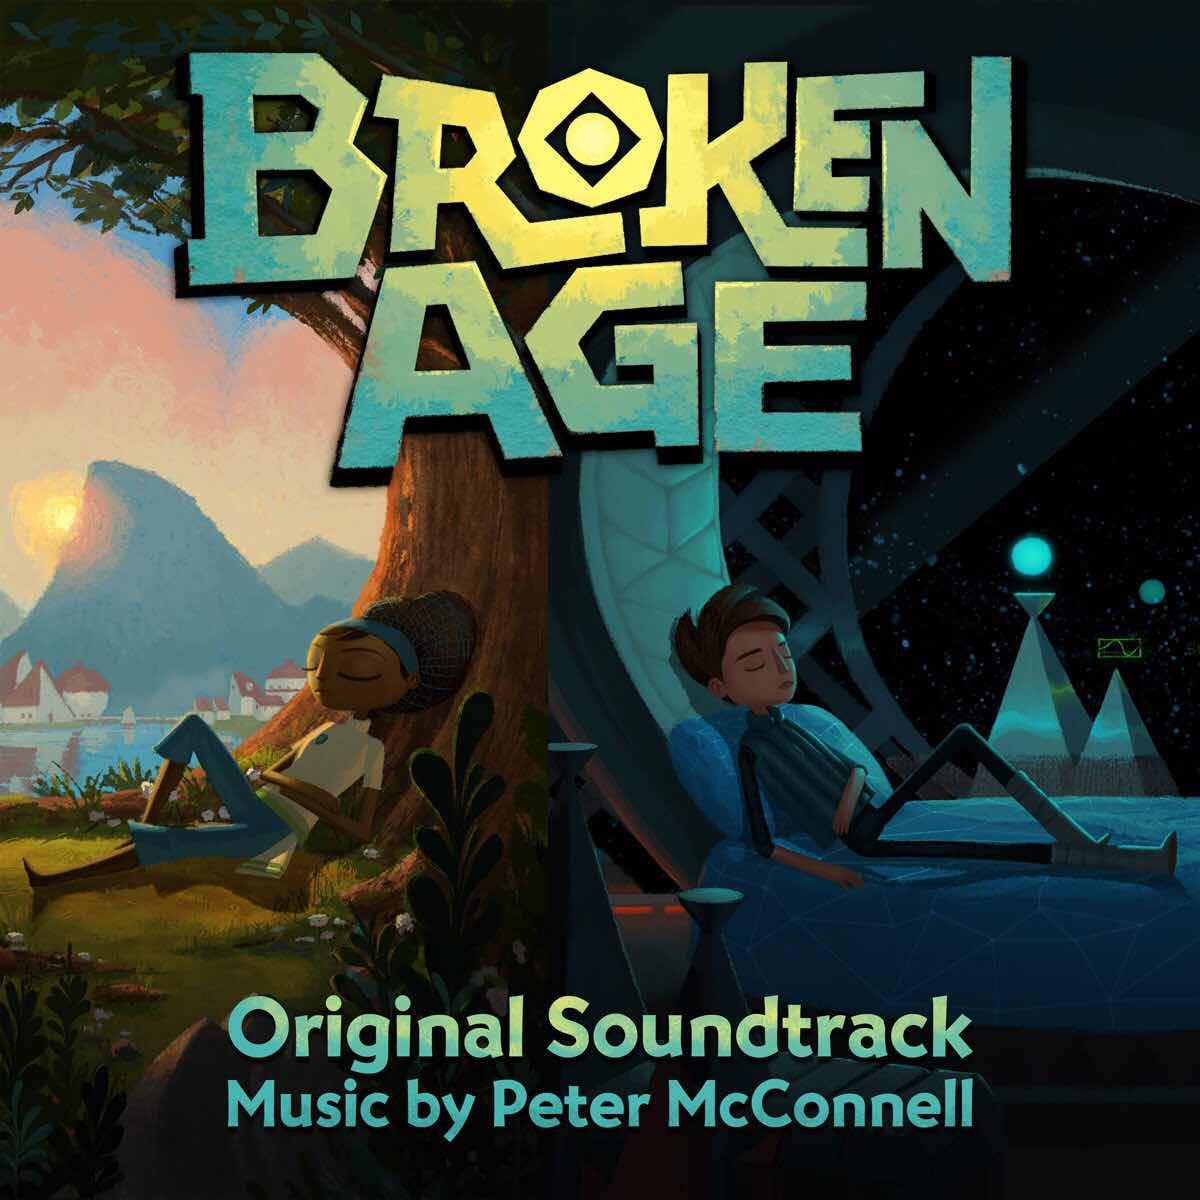 Mobile Games with Fantastic Soundtracks, Part 2 — Tools and Toys